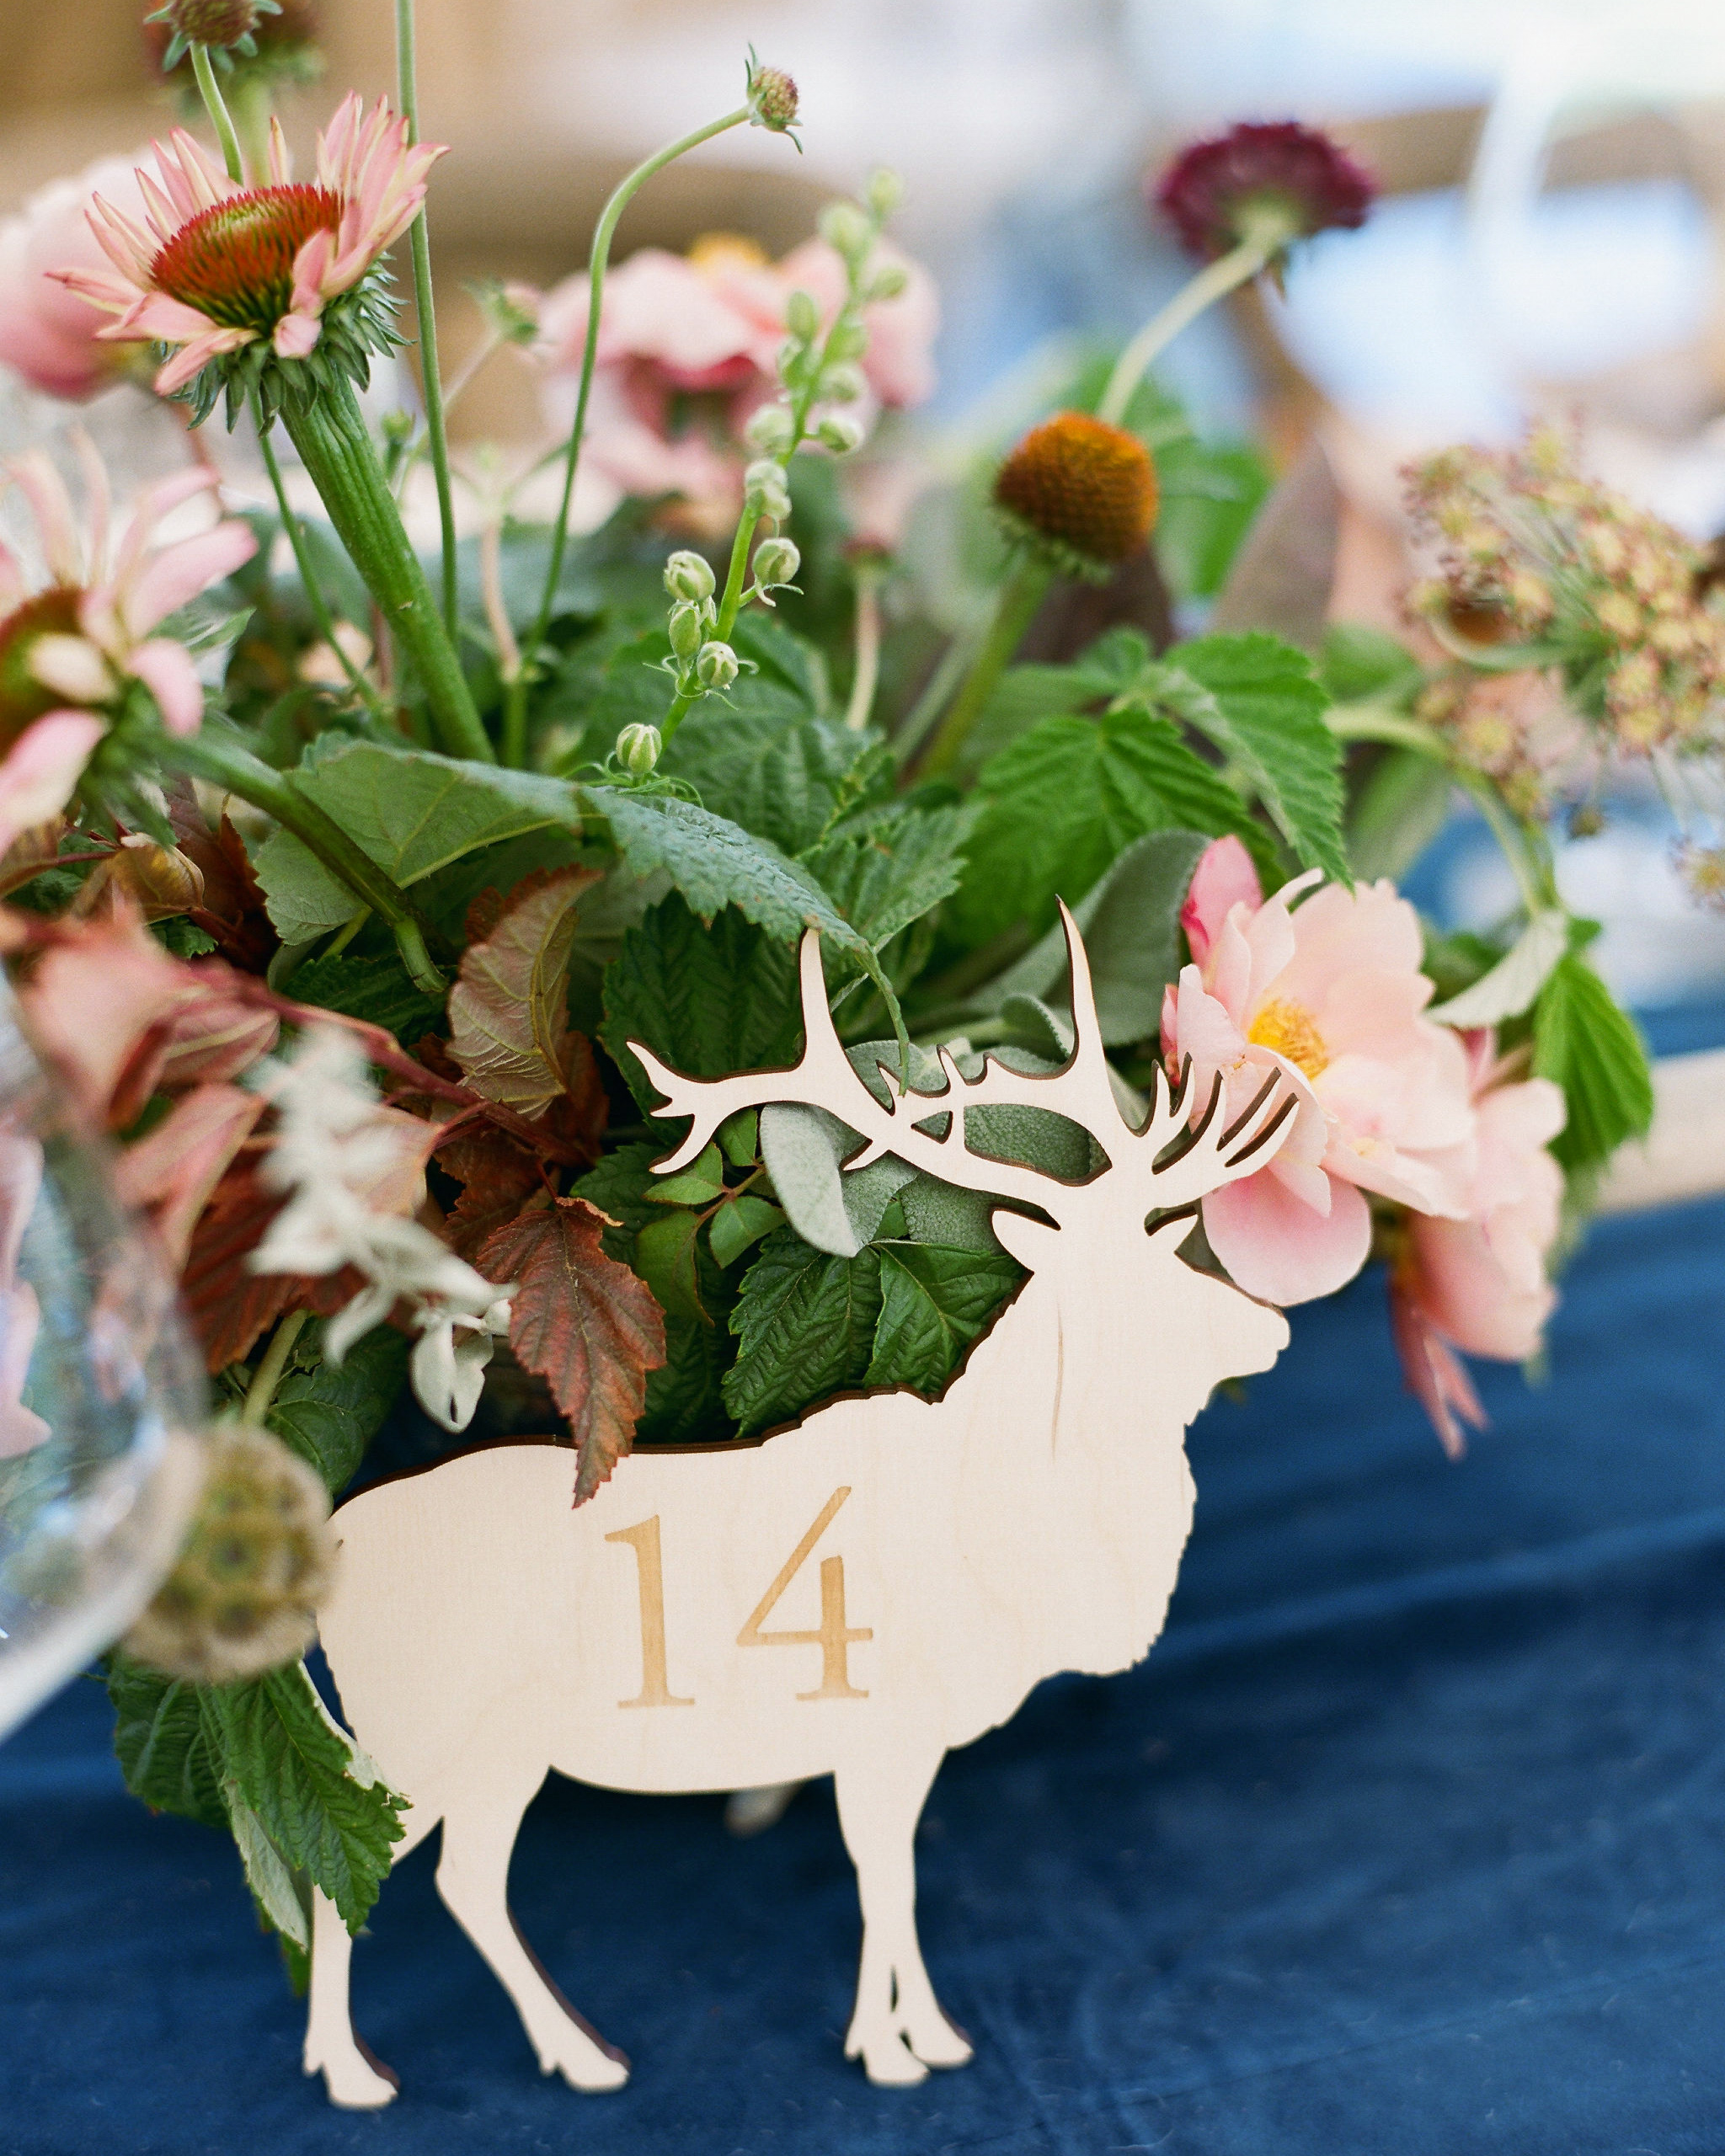 moose shaped table number with floral arrangement